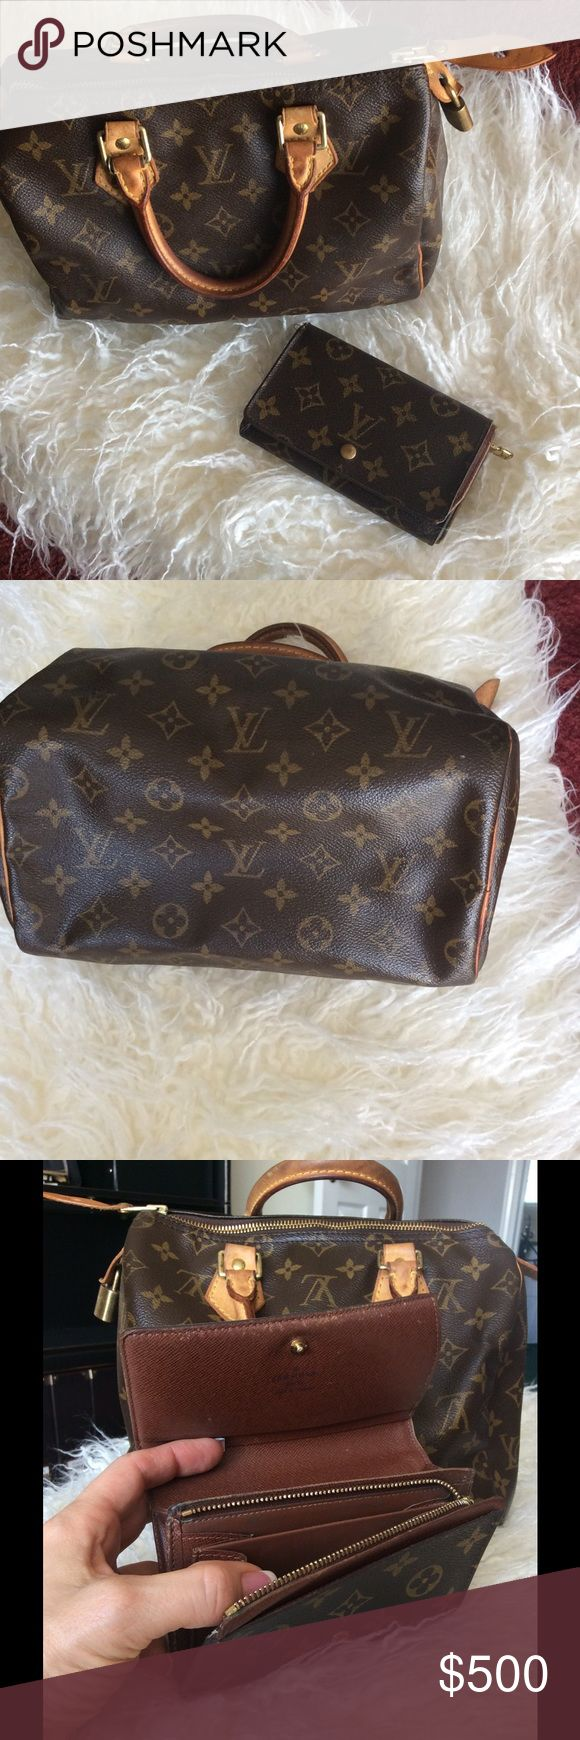 Authentic LV Speedy 25 w/ matching wallet. Authentic Speedy & wallet with dust cover, lock and key. NO trades. Bag has no rips or tears. Wallet is well worn with esperarían but zippers, snaps all working. Louis Vuitton Bags